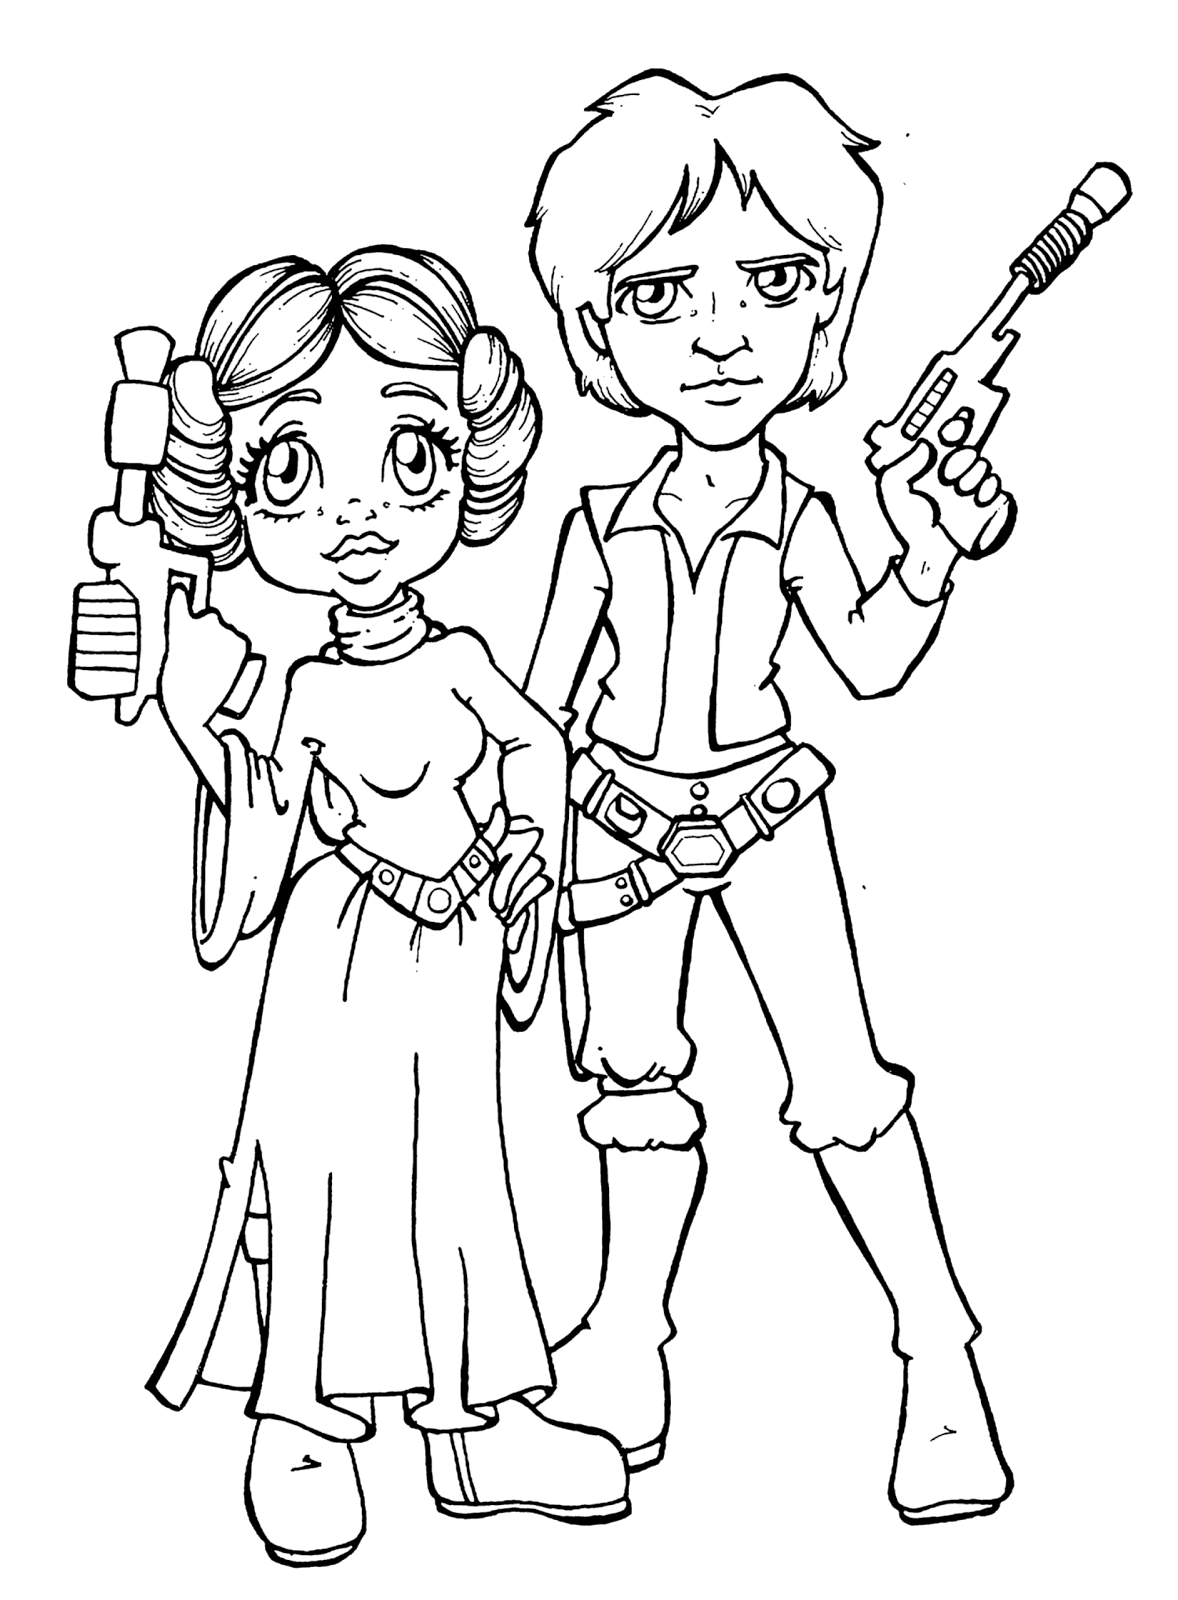 Free coloring pages of star wars princess leia for Princess leia coloring page